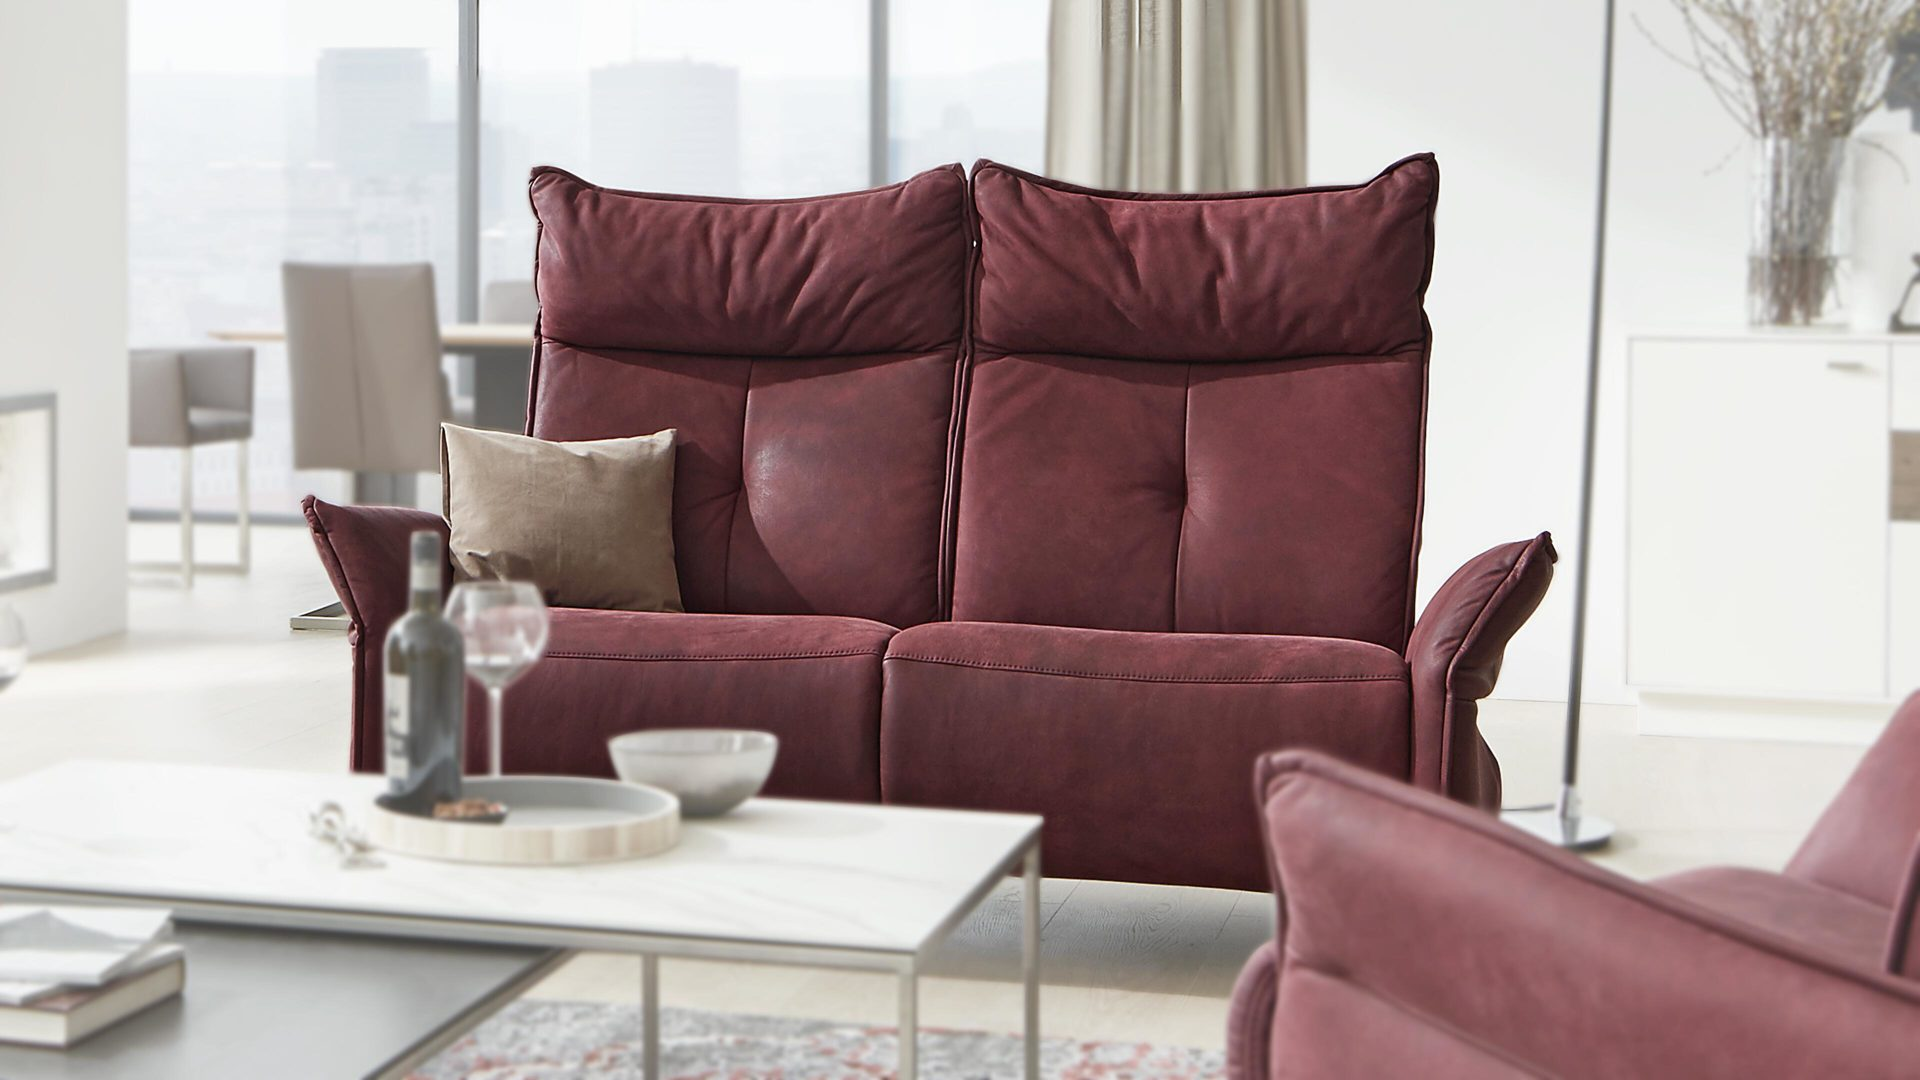 2,5-Sitzer Himolla | il aus Leder in Rot Interliving Sofa Serie 4200 – 2,5-Sitzer mit RelaxAssist merlotfarbenes LongLife-Leder – Länge ca. 182 cm